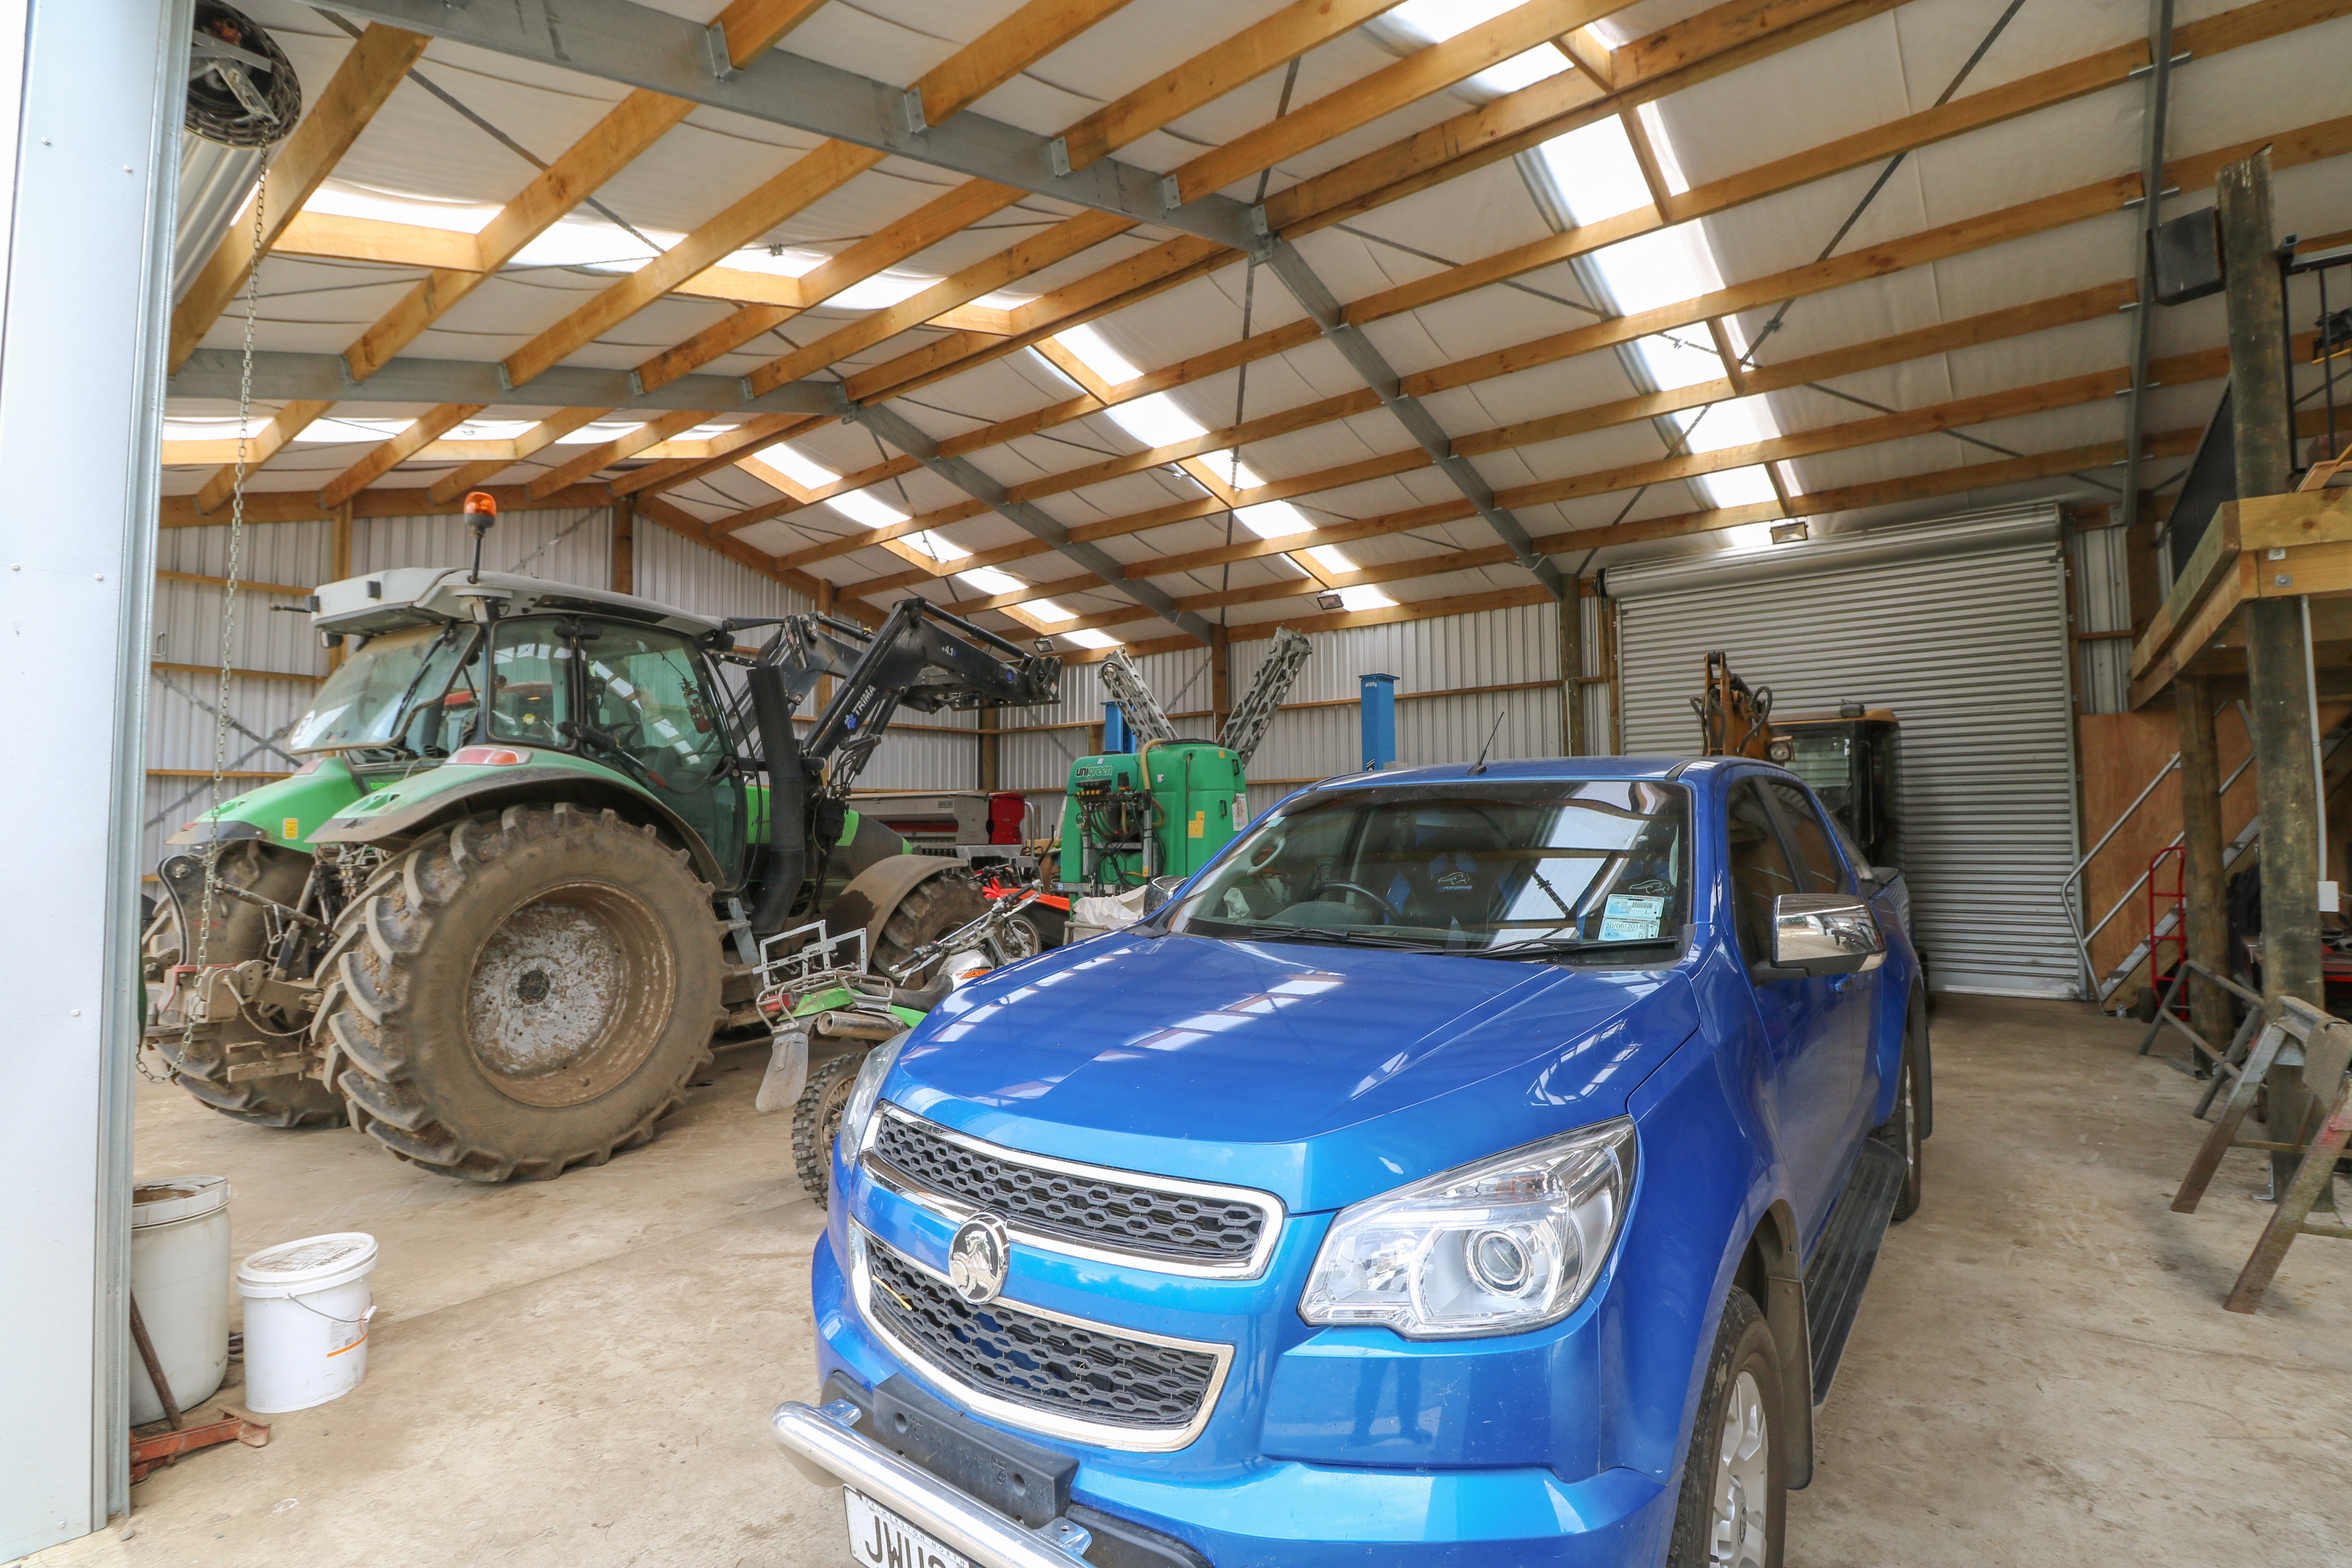 This lockup shed keeps expensive machinery and vehicles safe and secure